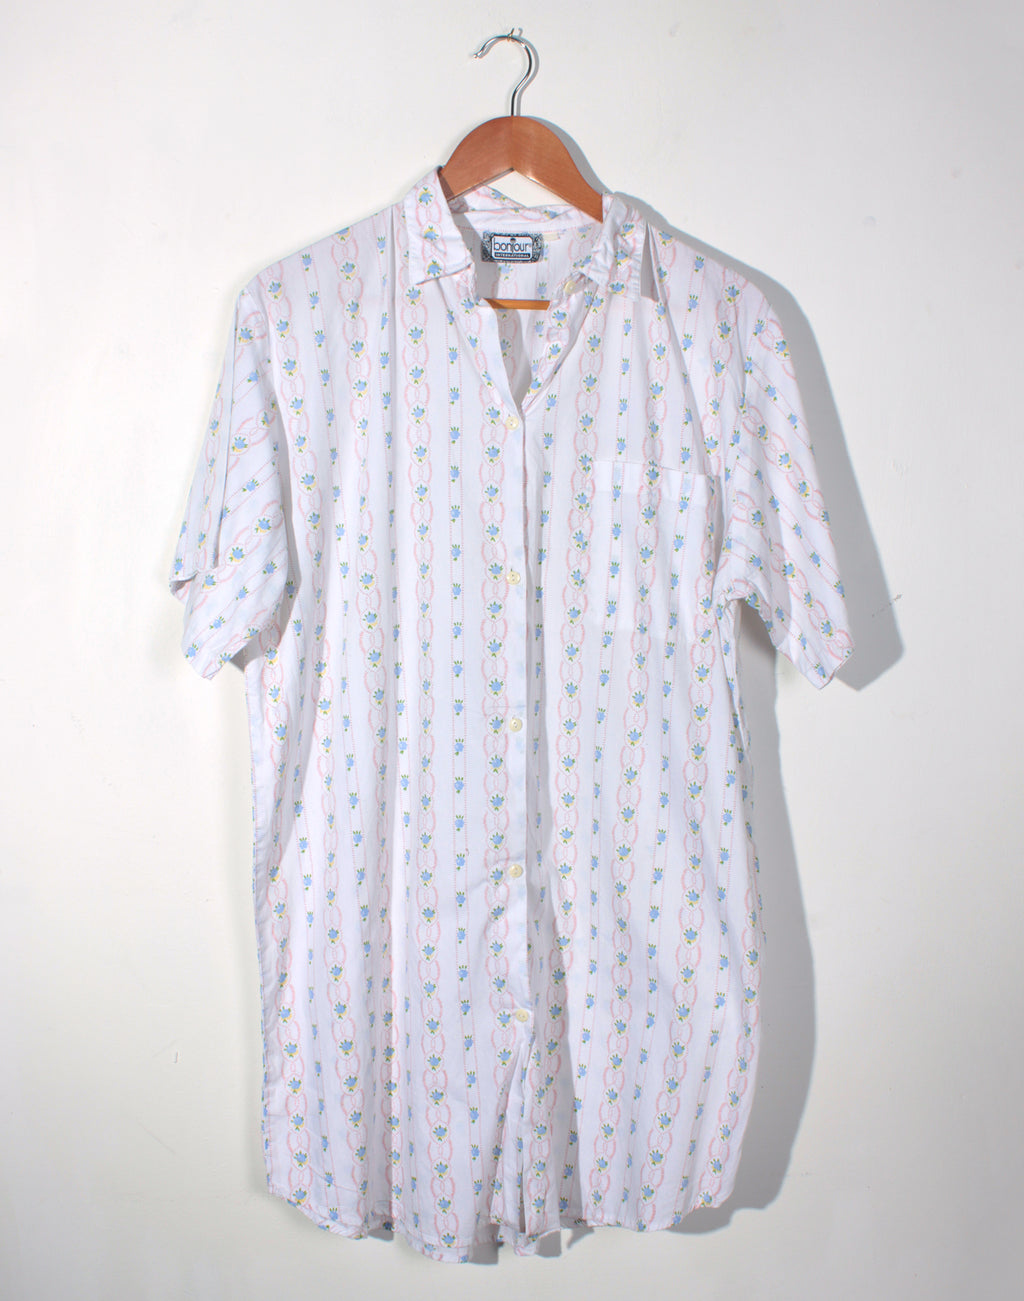 Vintage 80's Pale Floral Long Shirt